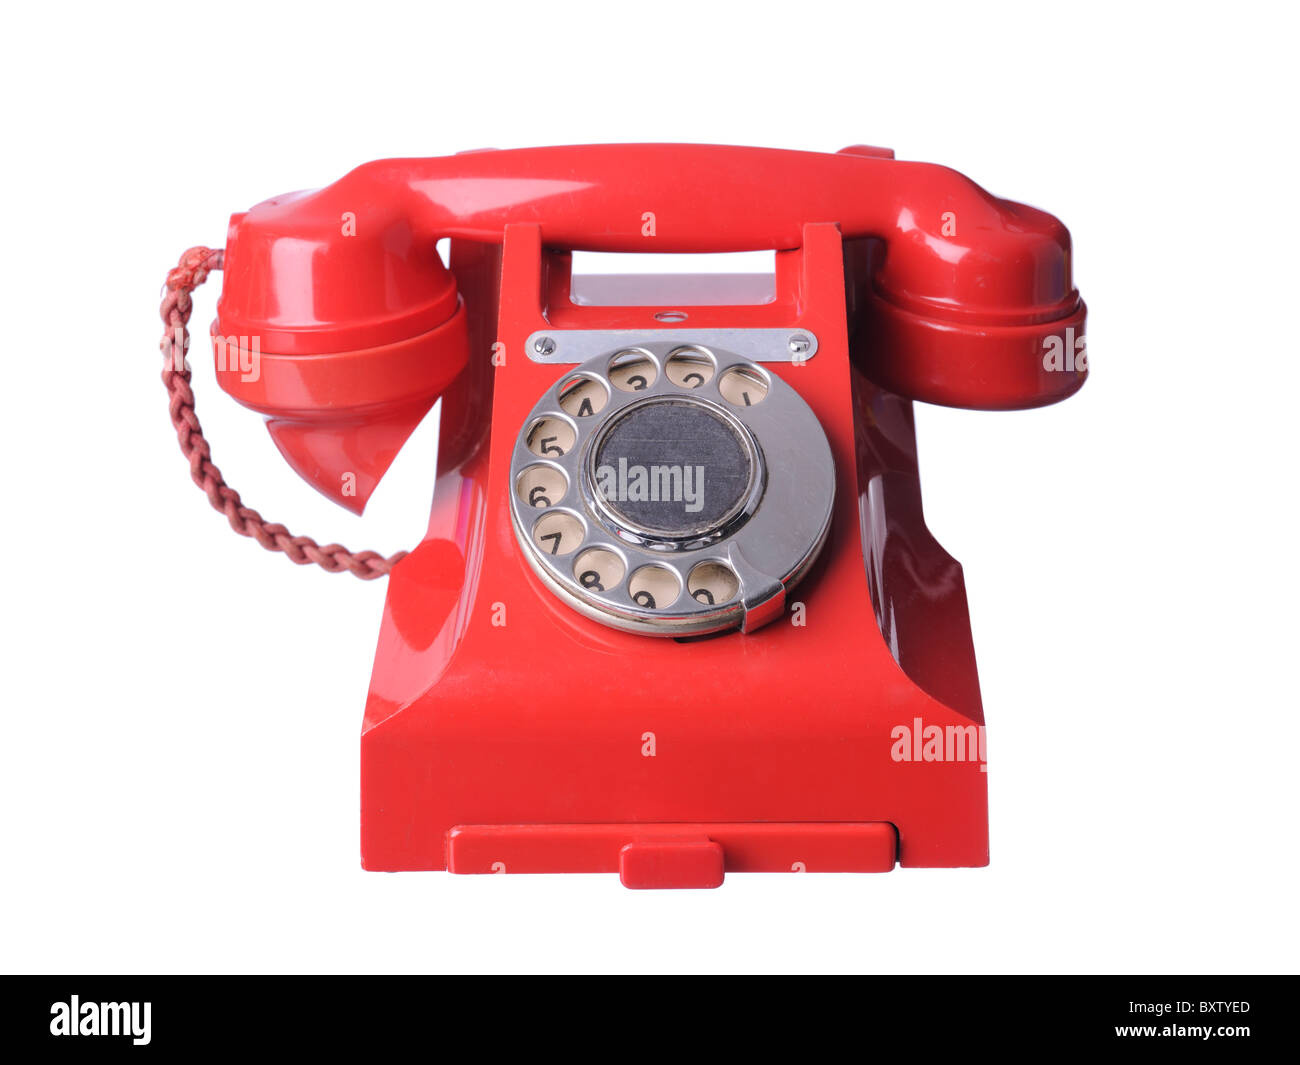 red bakelite old telephone - Stock Image